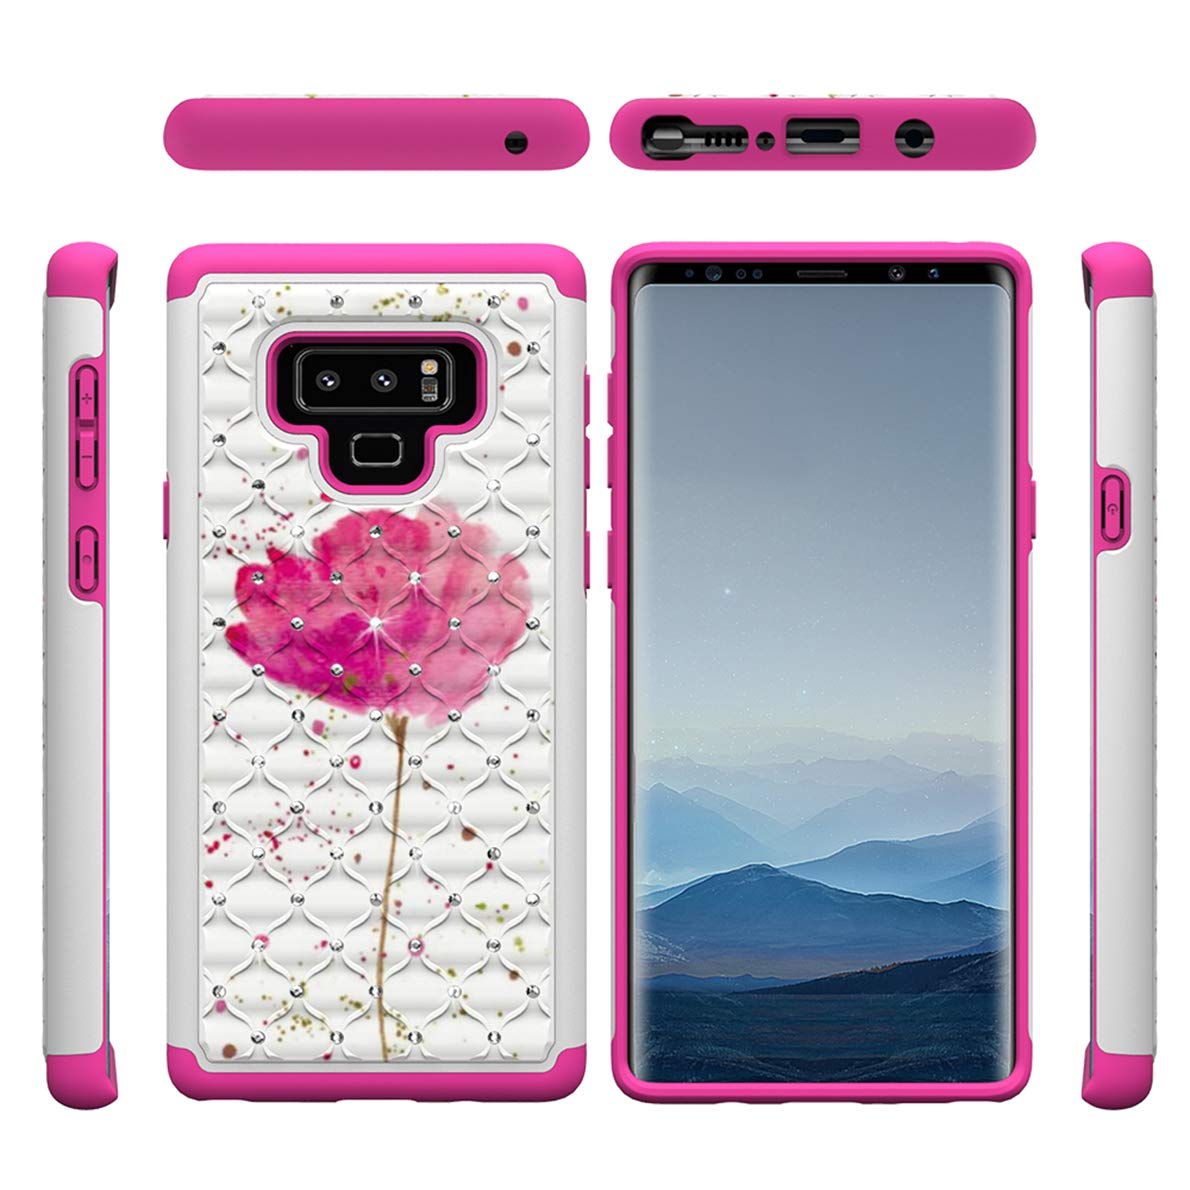 Samsung Galaxy Note 9 Hülle, SHUTIT Farbe Muster Case Bling Shiny Glitzer Shockproof Schutzhülle 2 in 1 Hybrid Harte PC Weiche TPU Schale Cover Handyhülle für Samsung Galaxy Note 9 SHUYIT